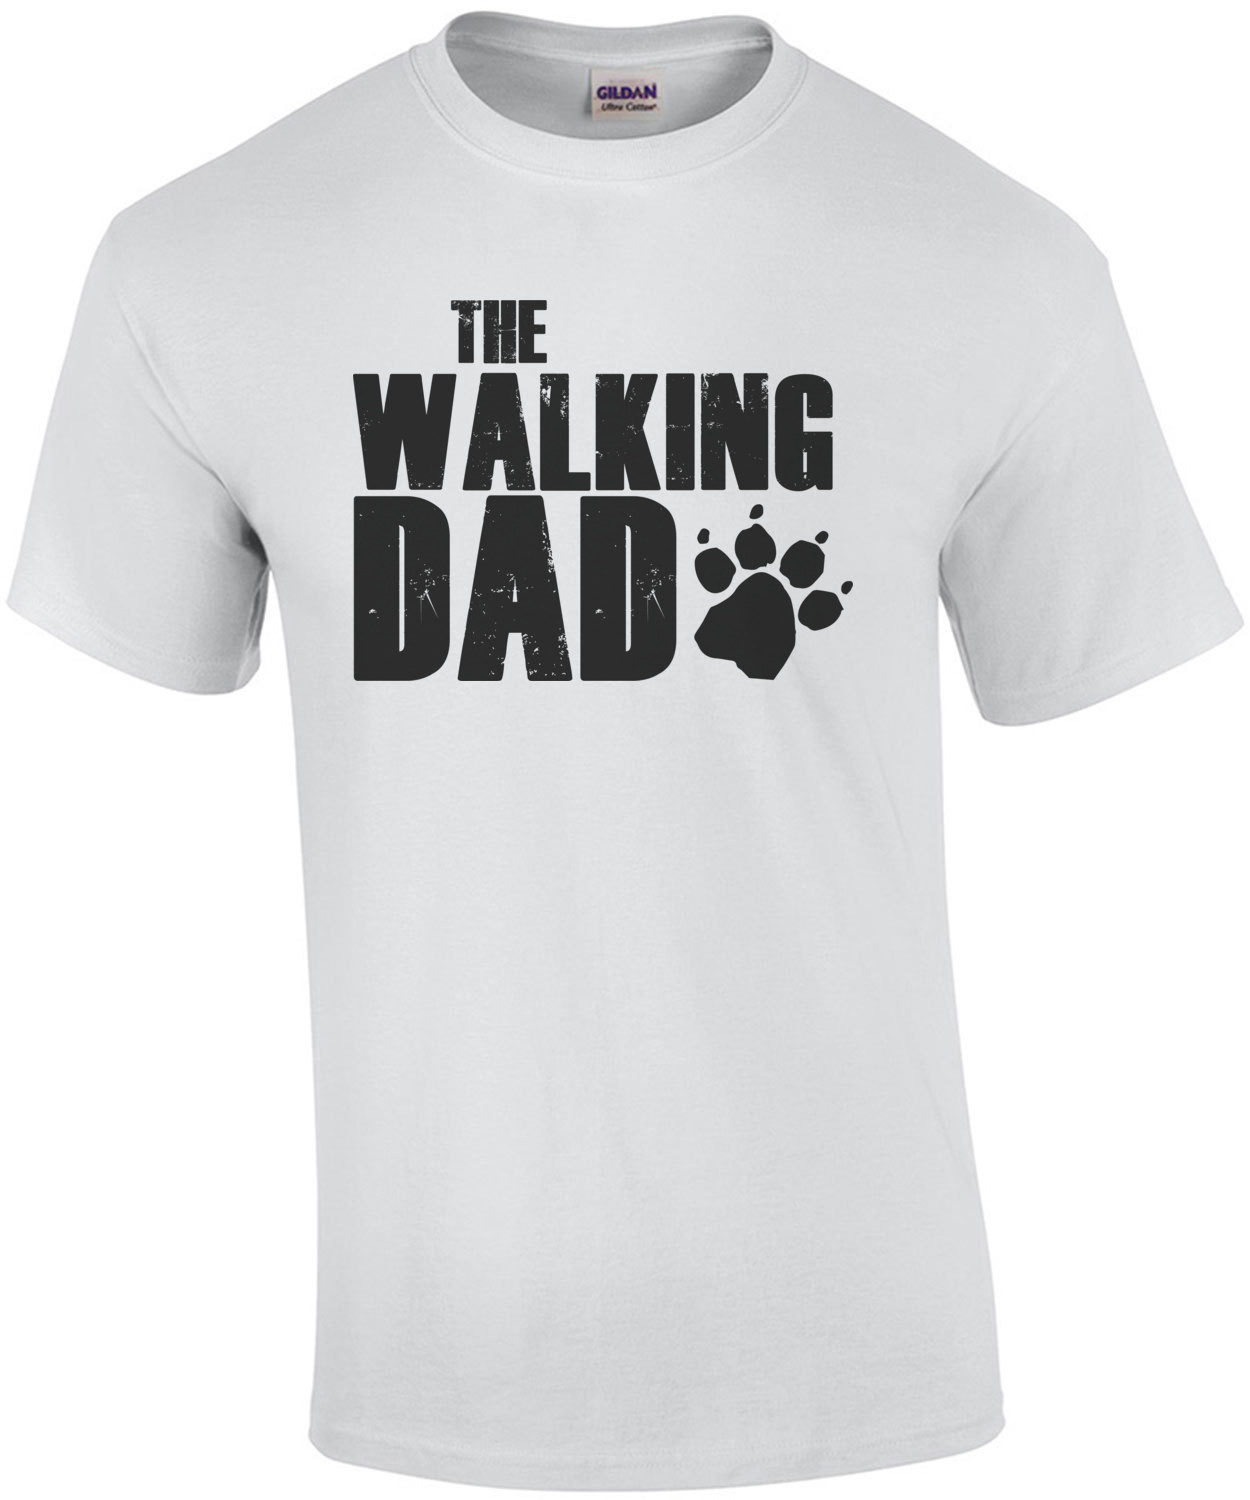 The Walking Dad - Dog T-Shirt